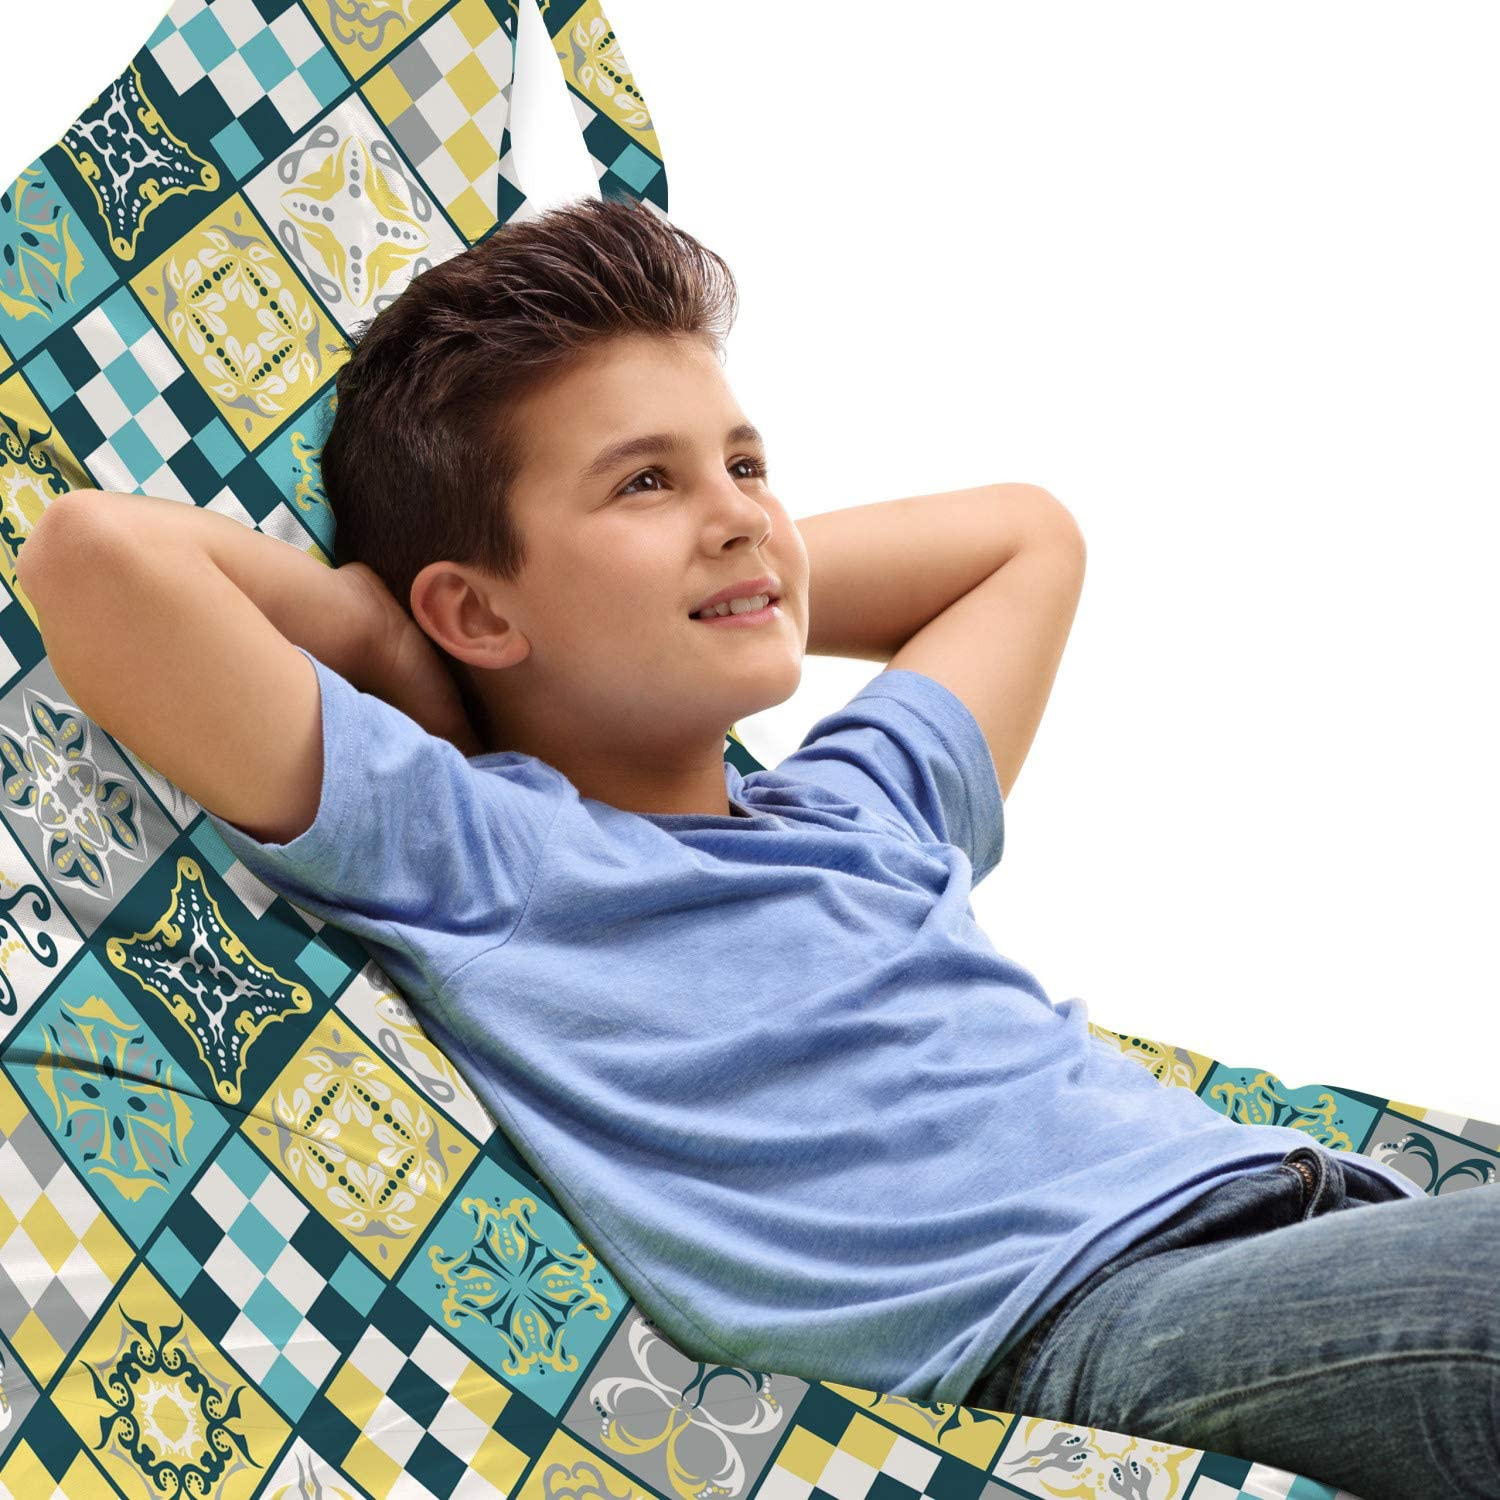 Lunarable Abstract Max 70% OFF Lounger Free shipping on posting reviews Chair Bag Style Eth Folkloric Mosaic